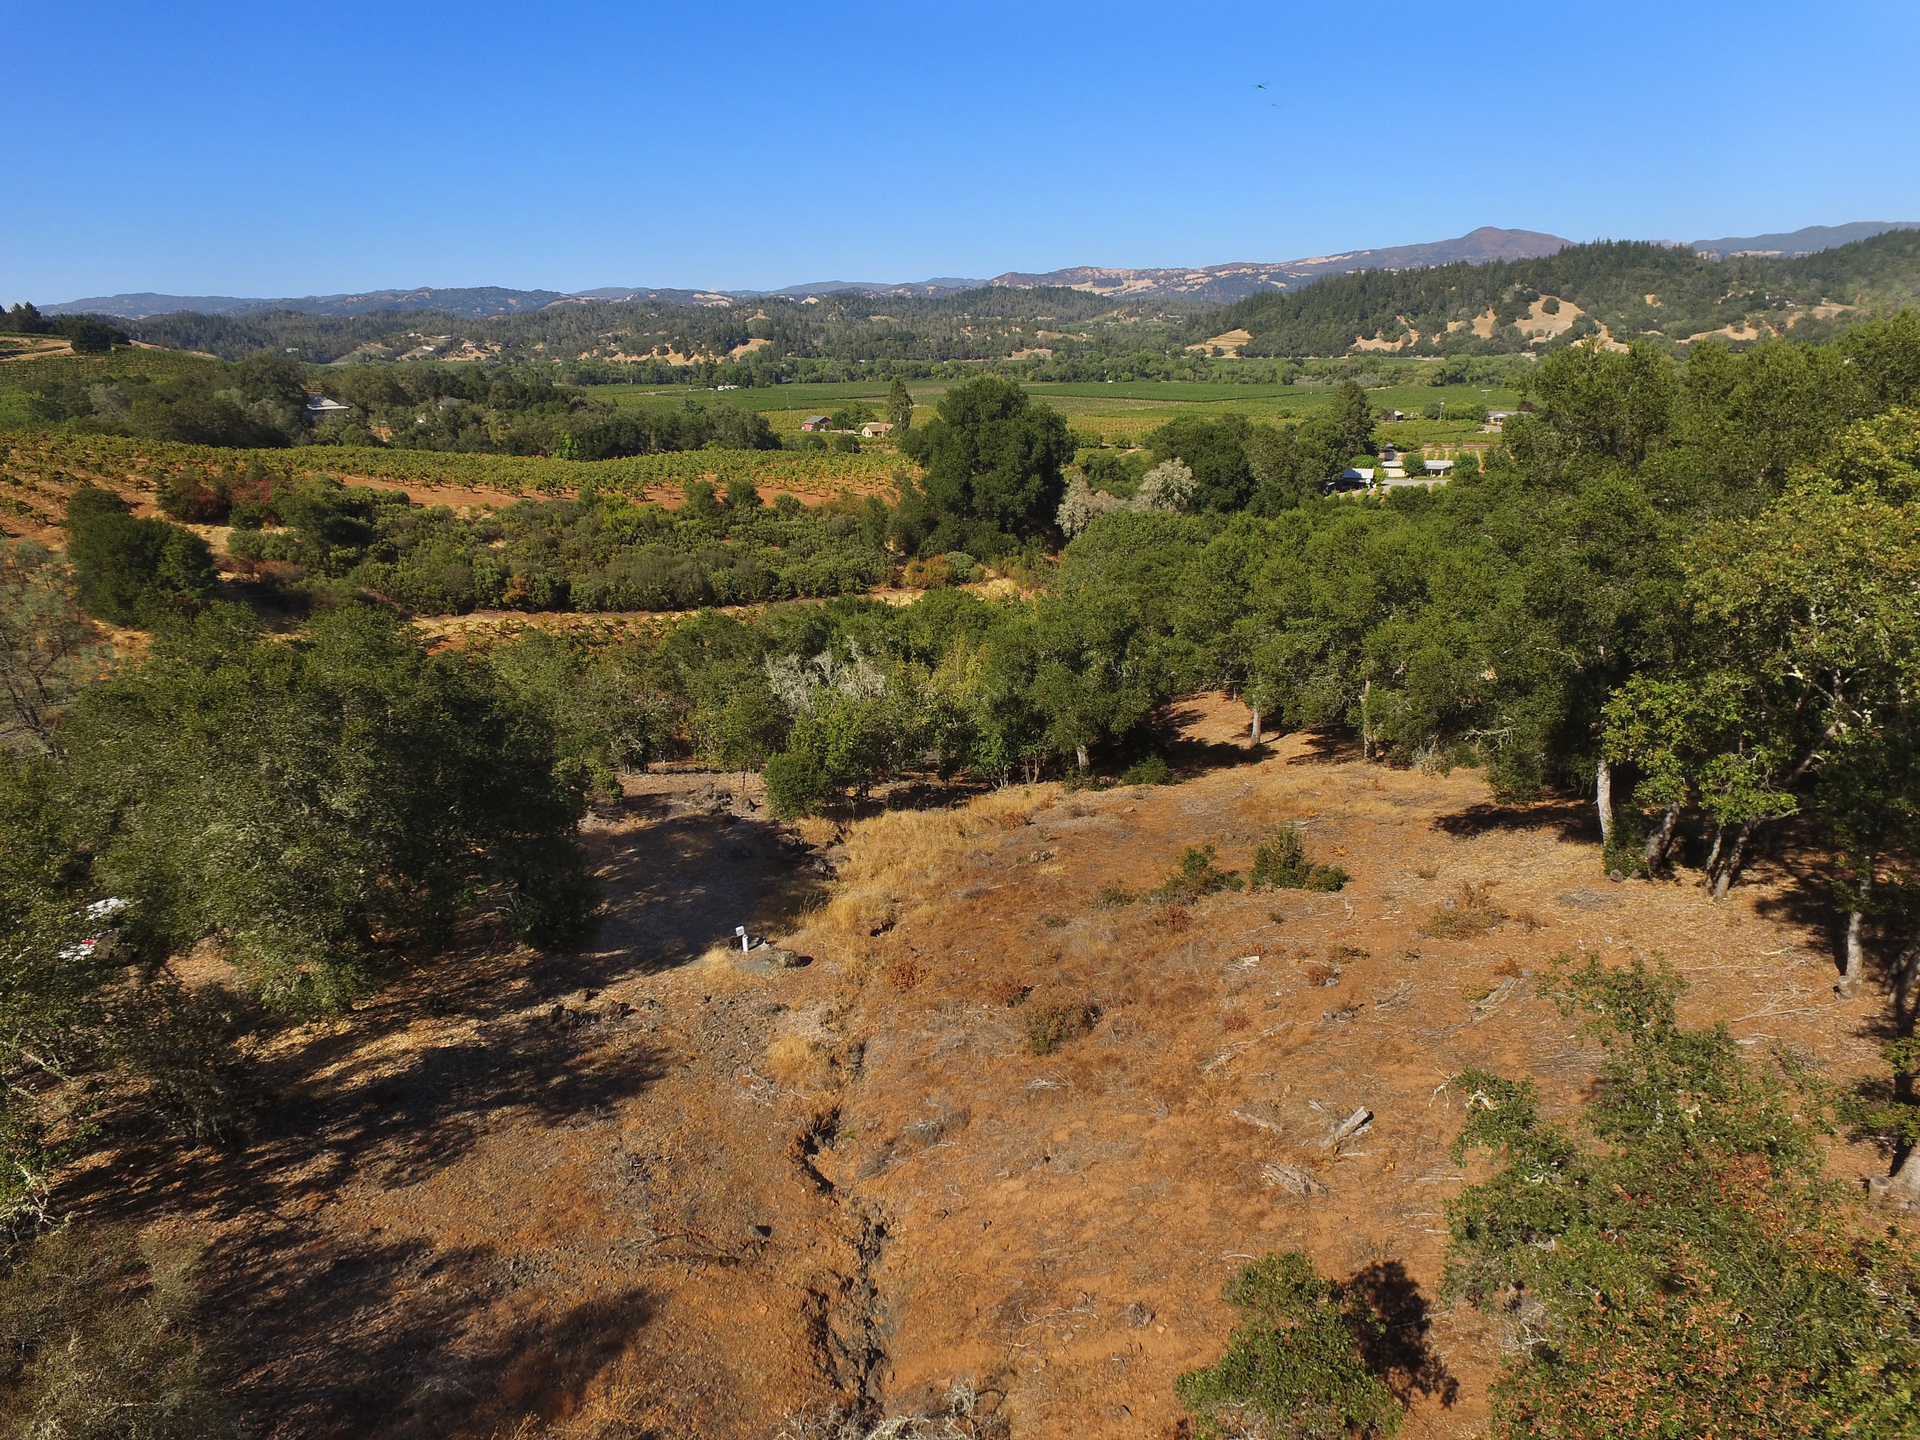 Great location for vineyard views and to build your wine country home. This 2-acre parcel offers a gentle downslope for building a lovely home in the heart of Dry Creek Valley. This gem is one of the last undeveloped small acreages left in Healdsburg.